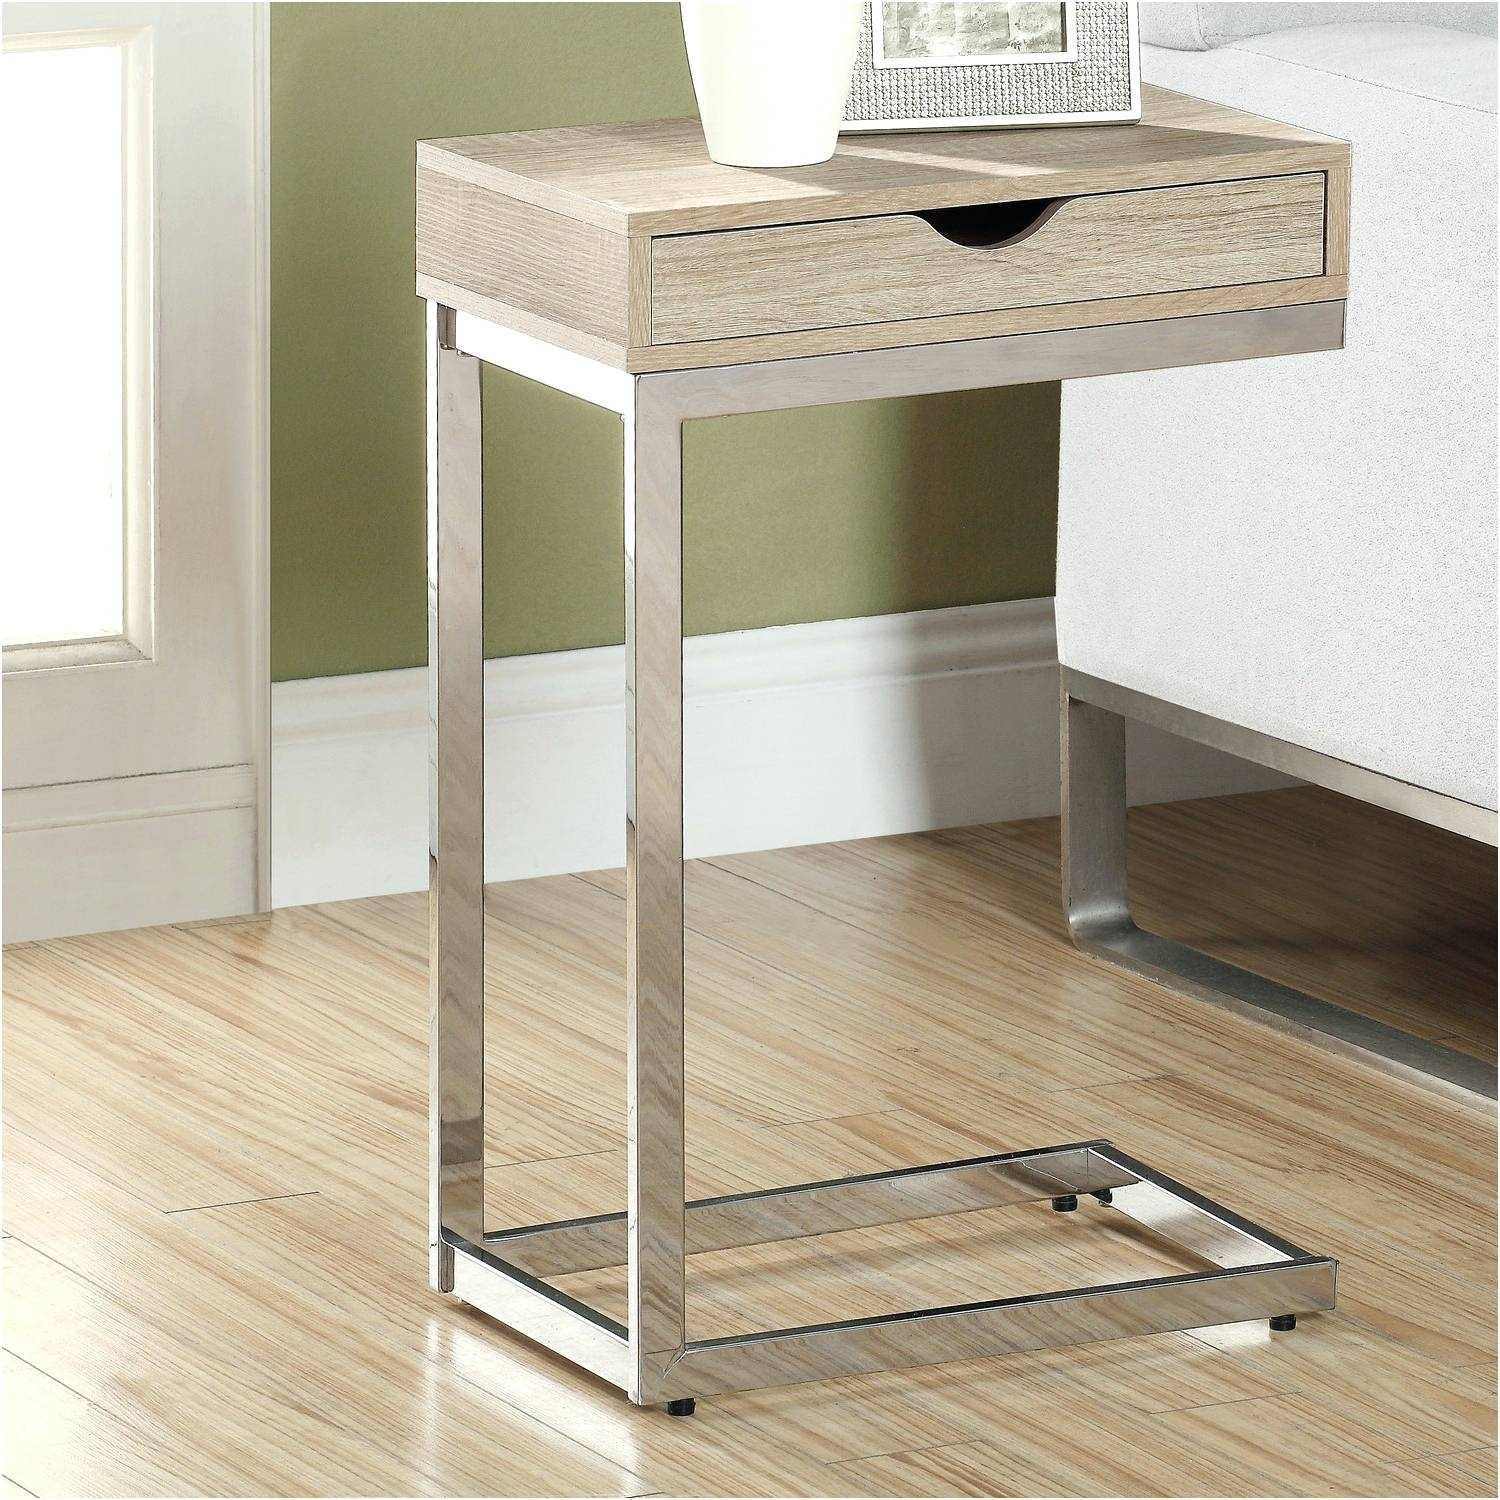 Sofa Chair Arm Rest Tv Tray Table Stand With Side Storage Slot pertaining to Under Sofa Tray Tables (Image 11 of 15)